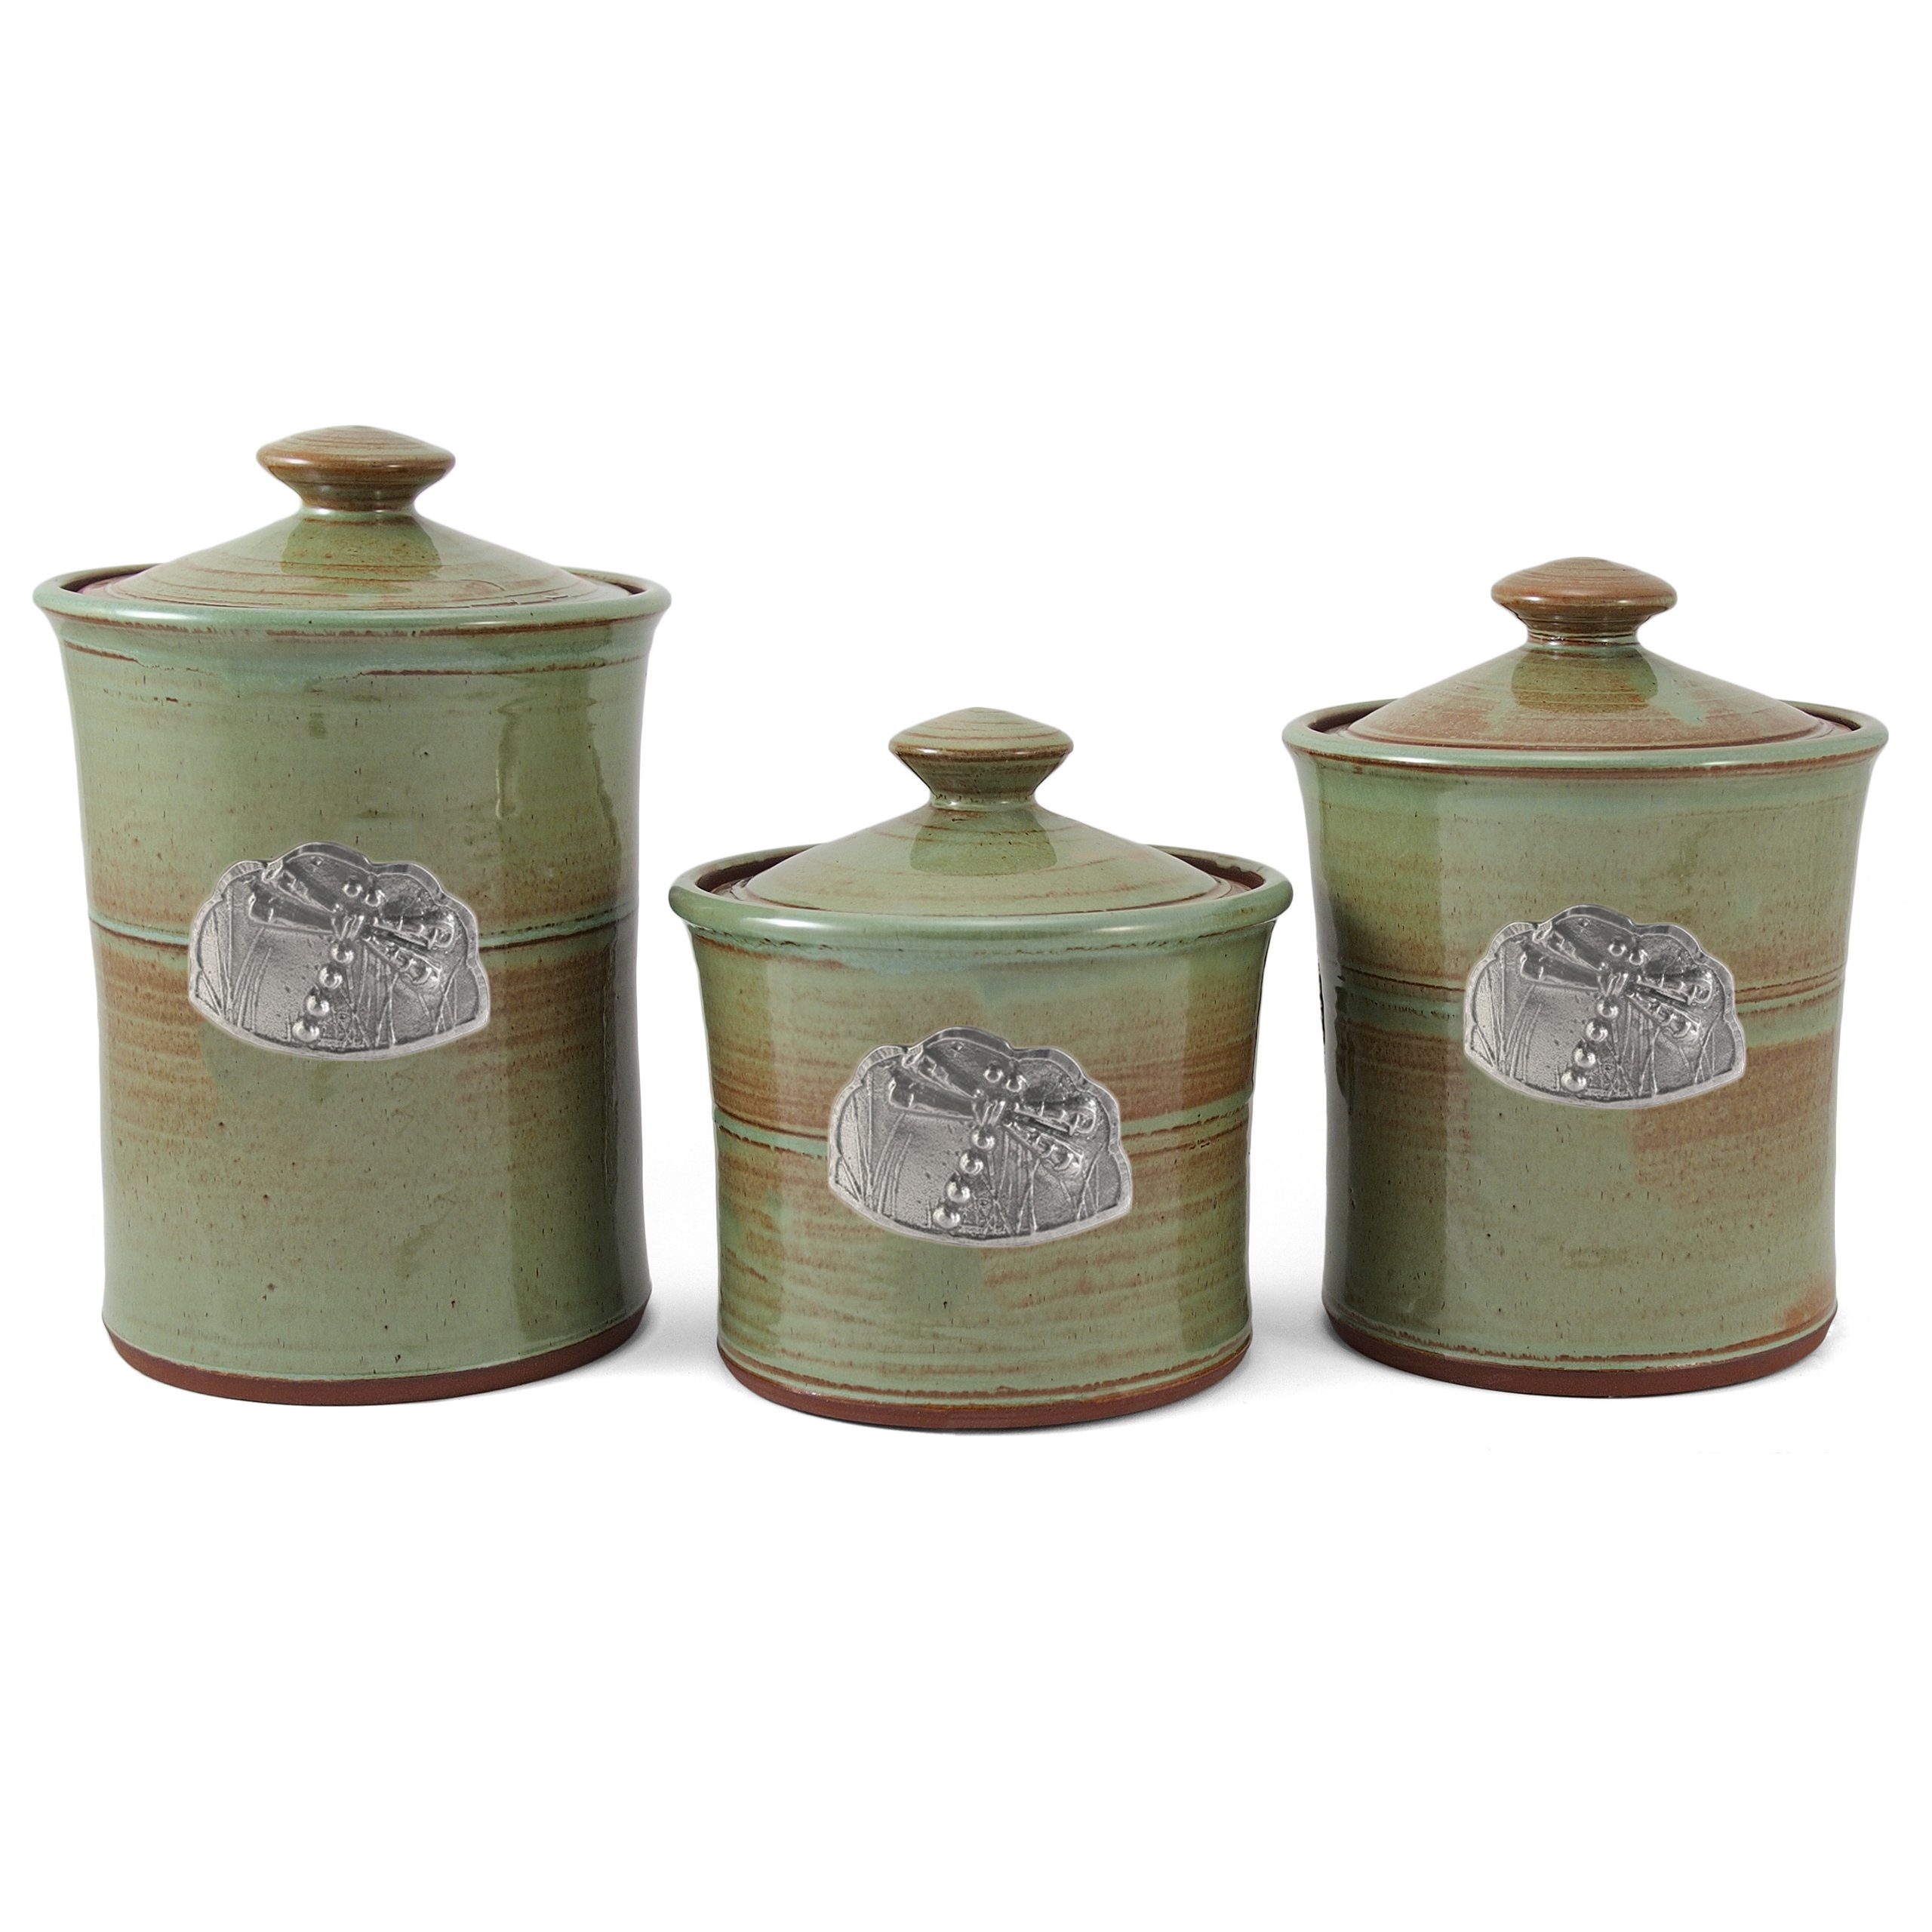 Oregon Stoneware Studio Dragonfly 3-piece Canister Set, Pistachio by Oregon Stoneware Studio